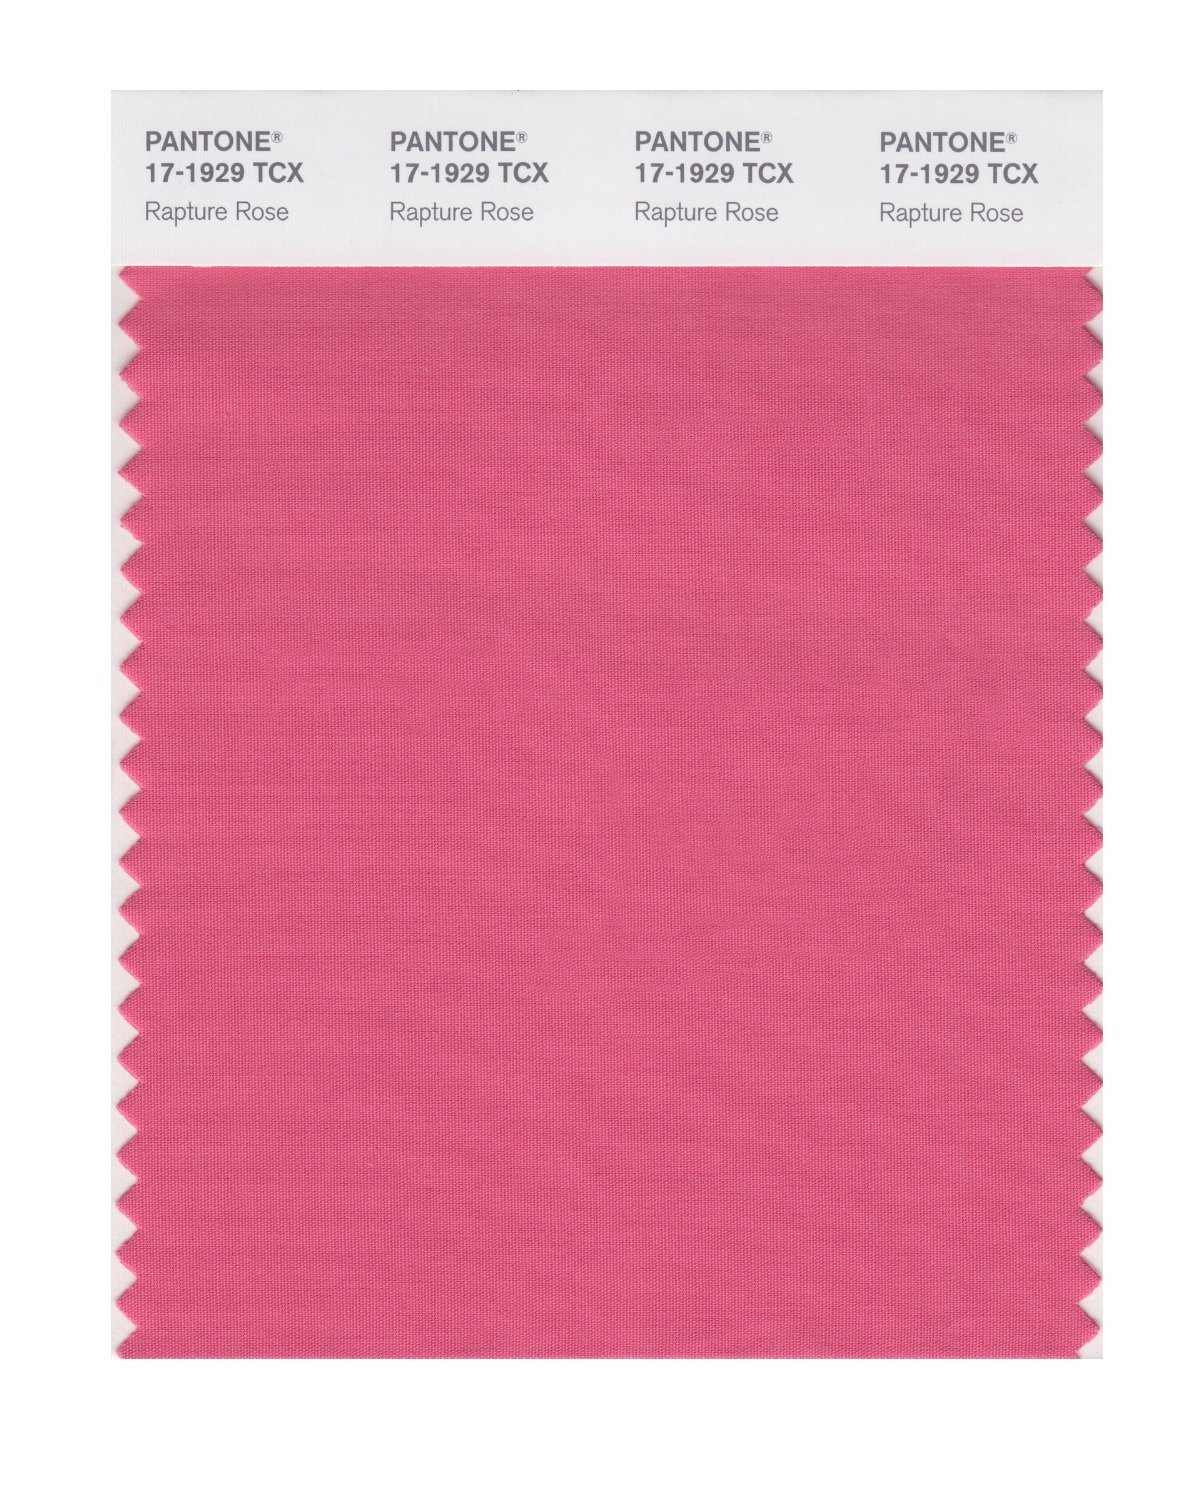 Pantone Smart Swatch 17-1929 Rapture Rose